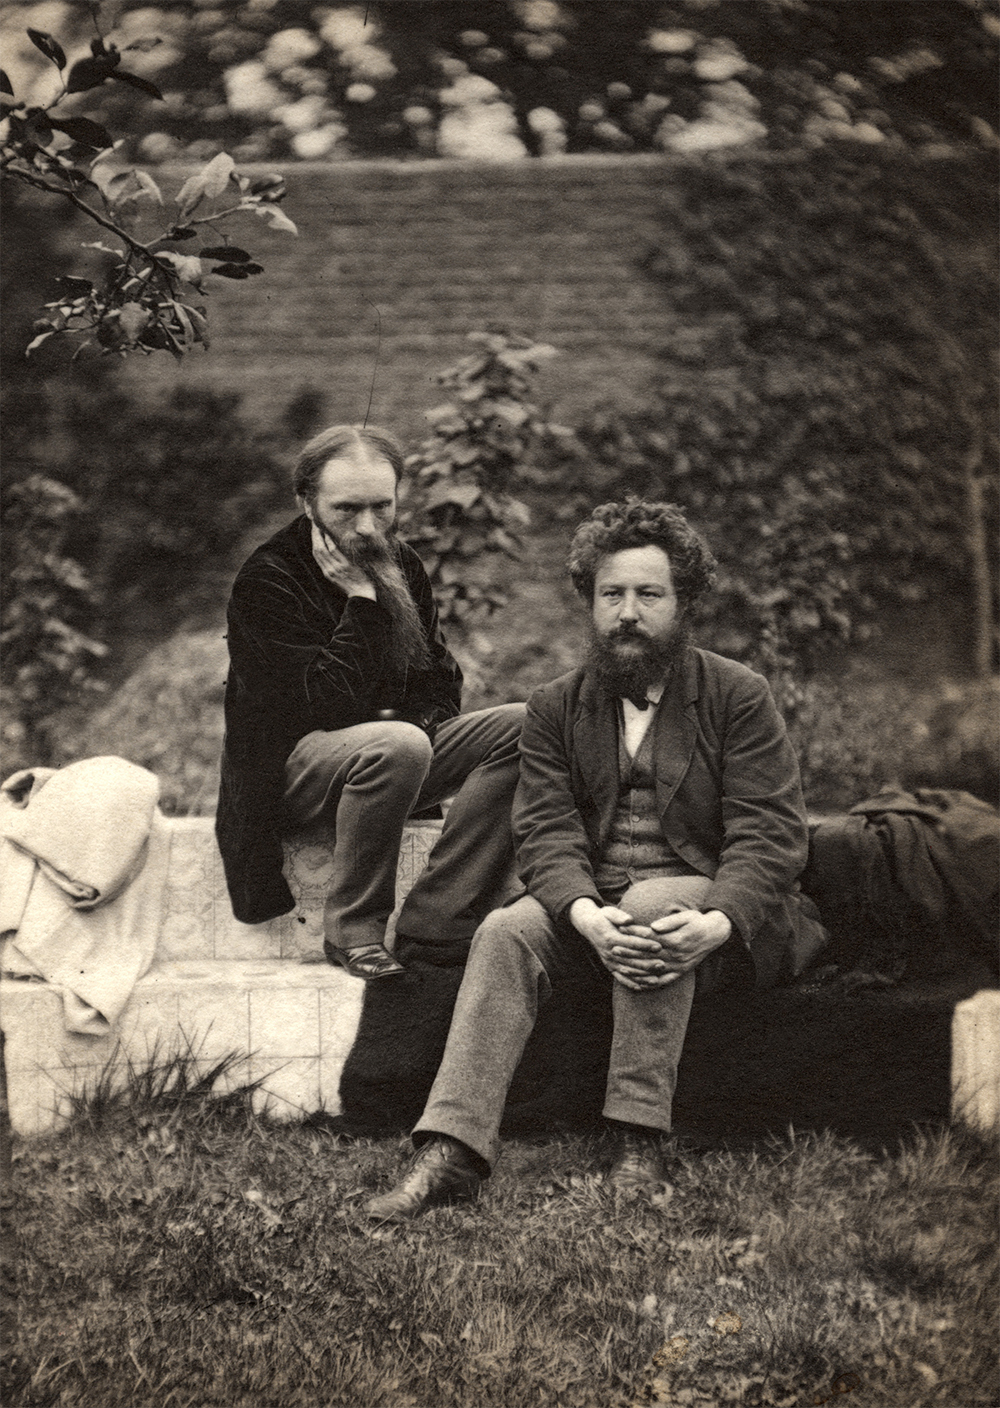 Sir Edward Burne-Jones (left) and William Morris (right), by Frederick Hollyer, platinum print, 1874 (Copyright National Portrait Gallery London)